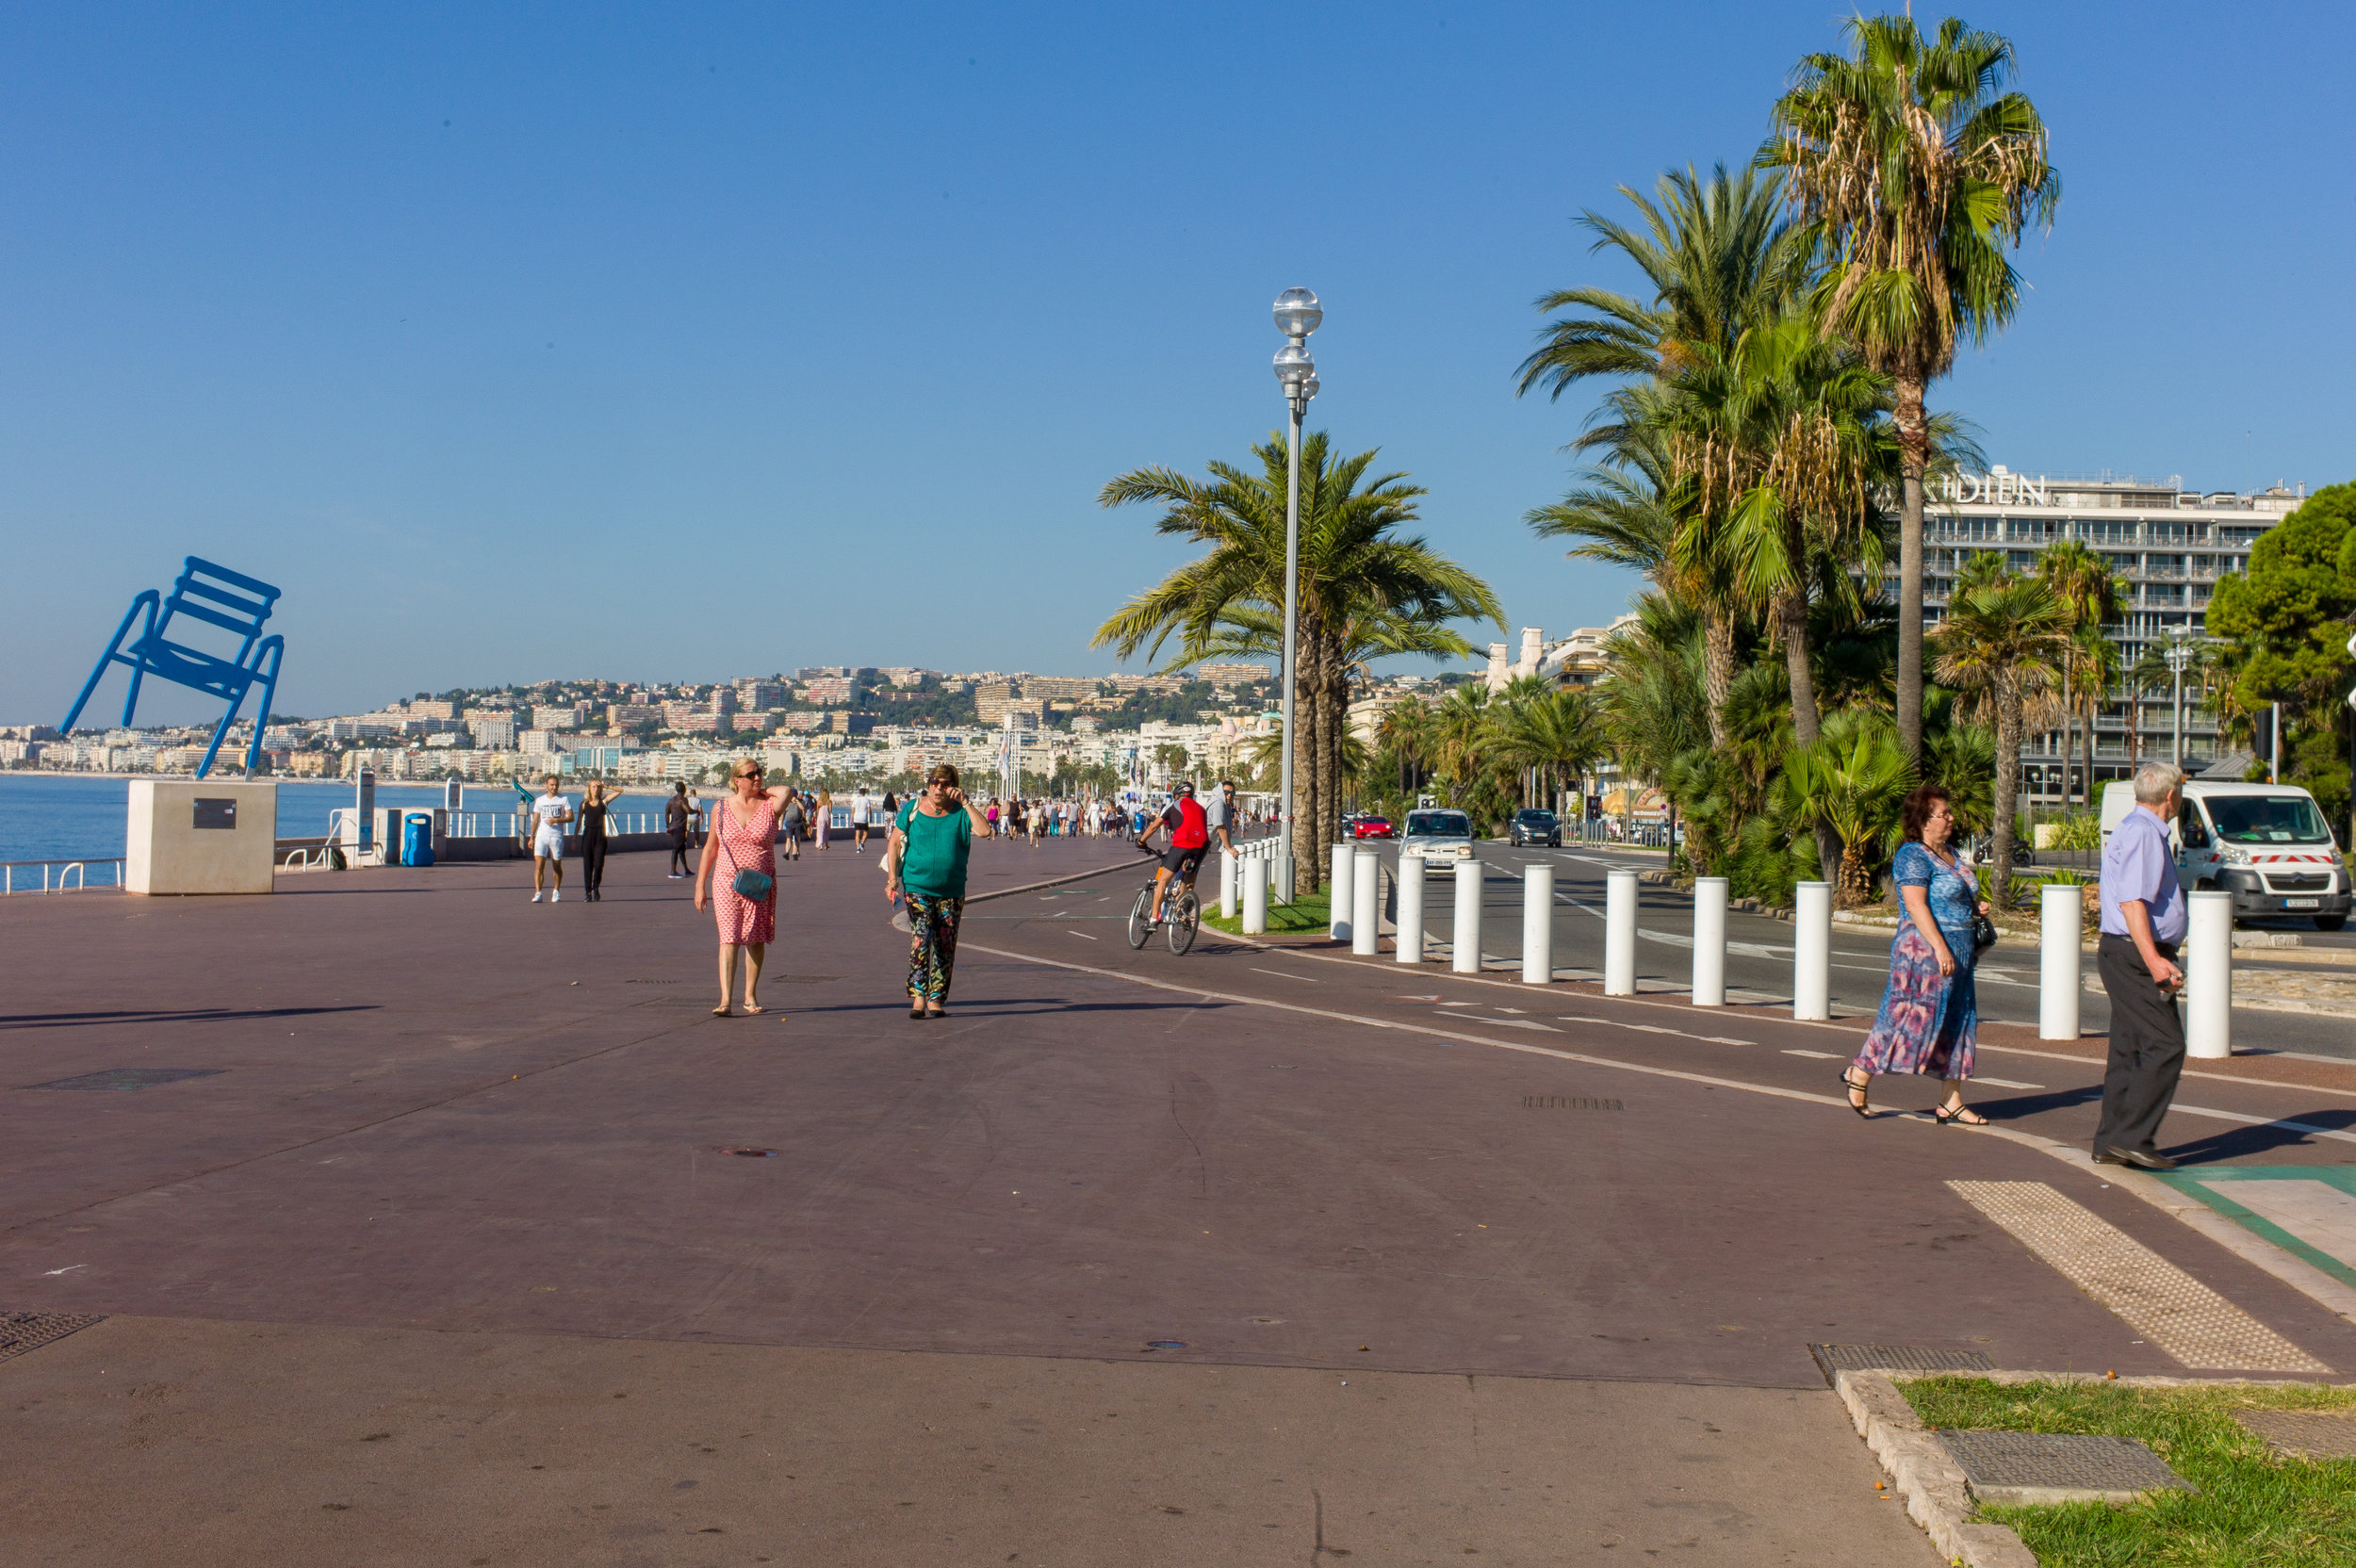 Promenade des Anglais, Nice, France, 2018  Starting in the second half of the 18th century, the English aristocracy took to spending the winter in Nice, enjoying the panorama along the coast. Inspecting this image, our eyes may land first on the people. The promenade might be second simply because of its weight in the image. The odd alignment of the chair might also attract attention. The subtlety (or punctum) however relates to the white posts along the edge of the promenade. They protect the strollers from traffic. On July 14, 2016 a truck was deliberately driven down the promenade, killing 84 people and injuring over 200.